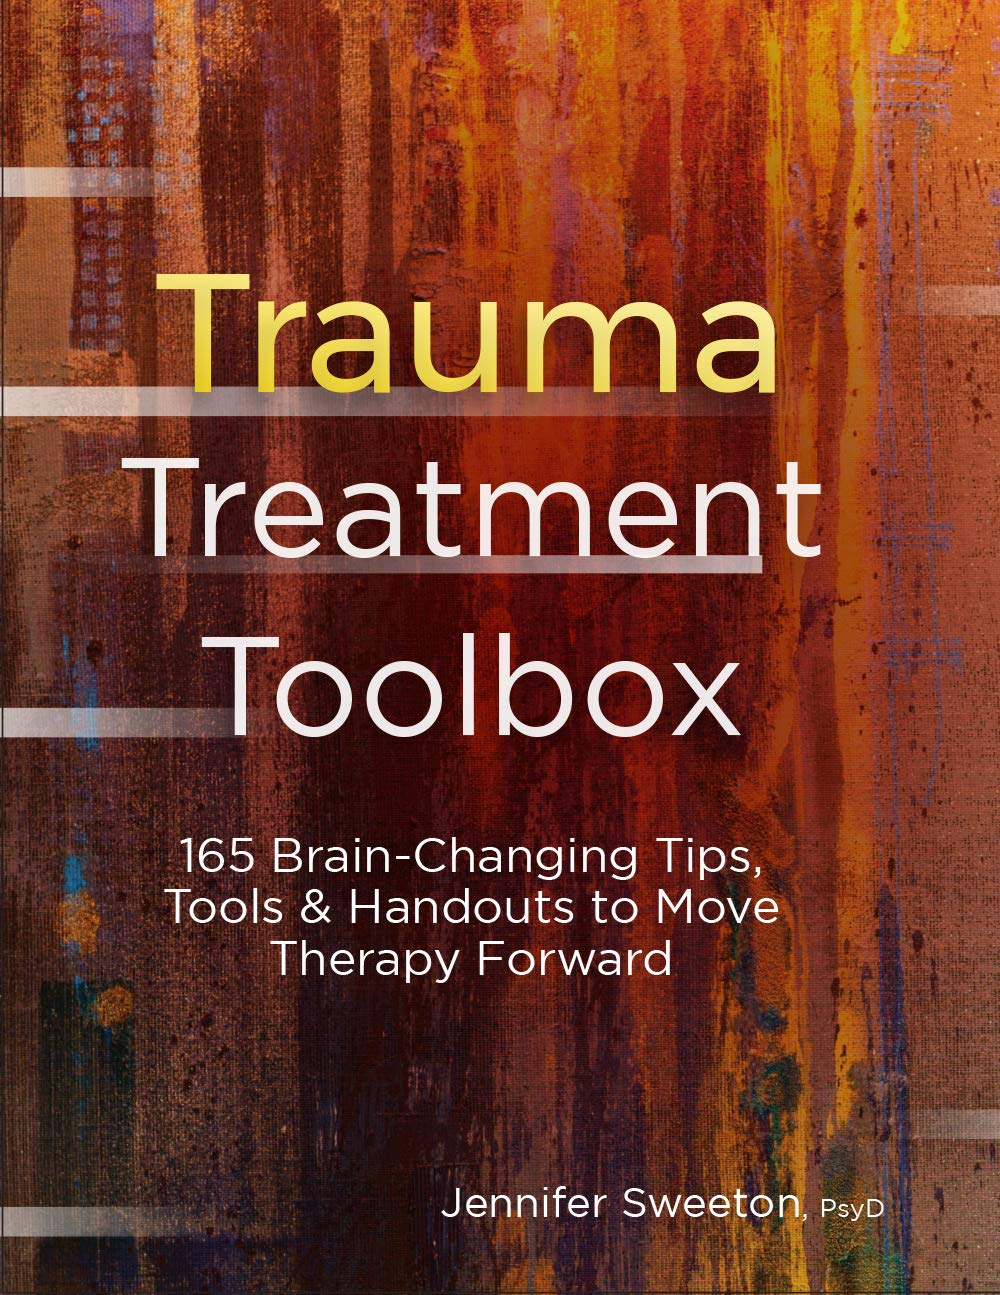 Trauma Treatment Toolbox: 165 Brain-Changing Tips Tools & Handouts to Move Therapy Forward (English Edition)